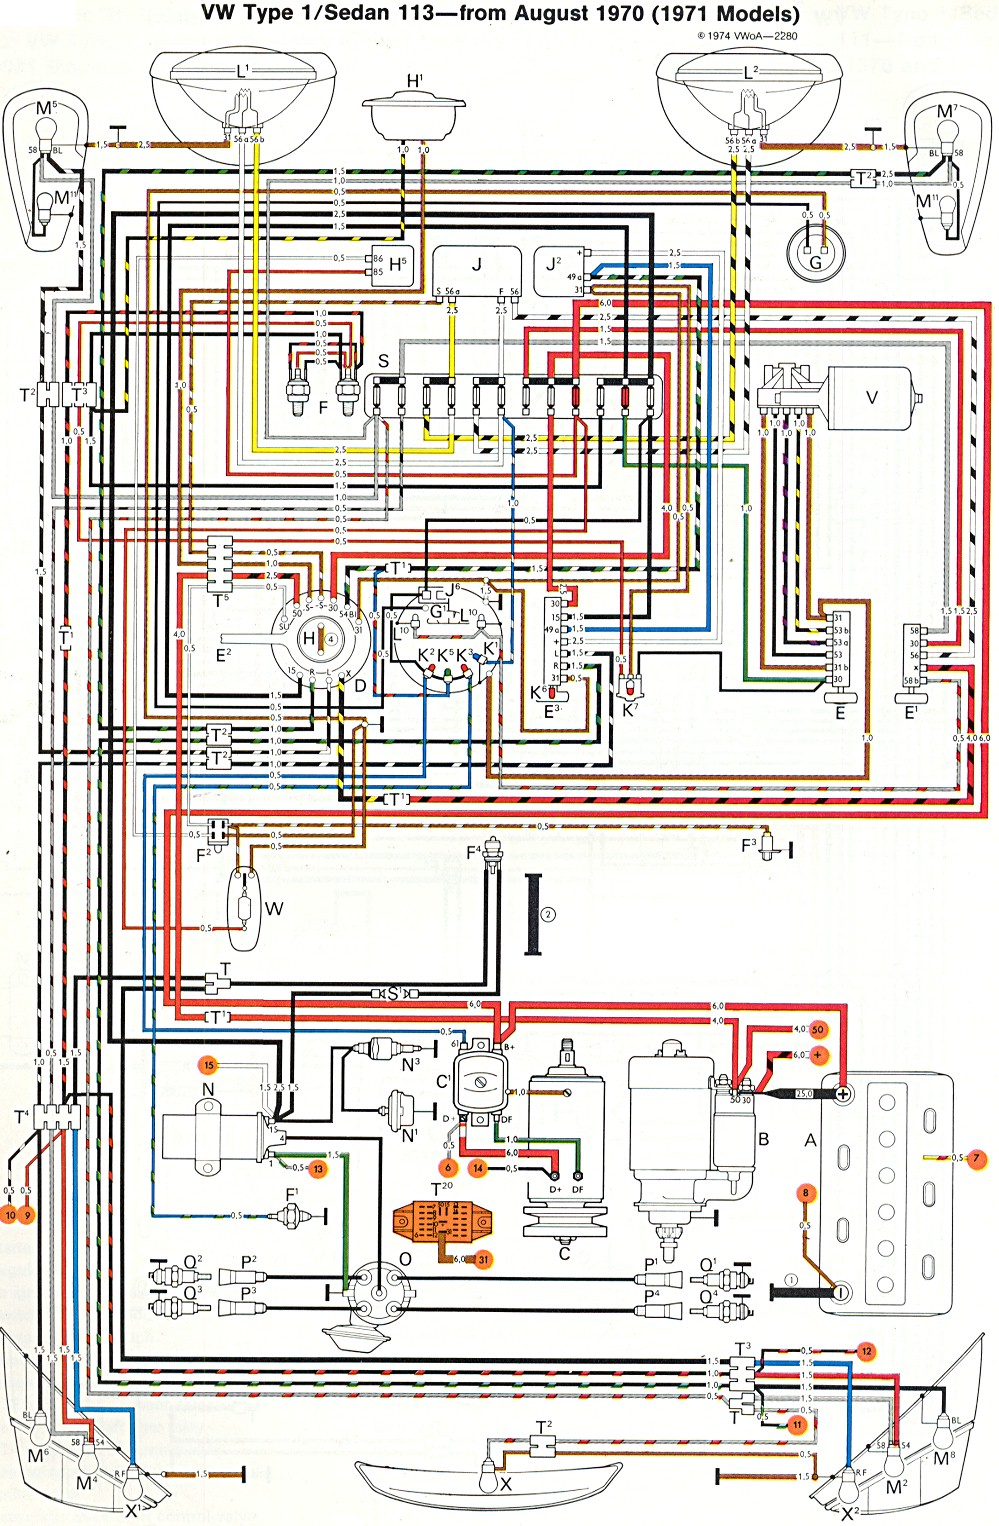 Wiring Diagram For 2002 Volkswagen Beetle Simple Schema 02 Vw Jetta Audio Super Schemes 2005 New